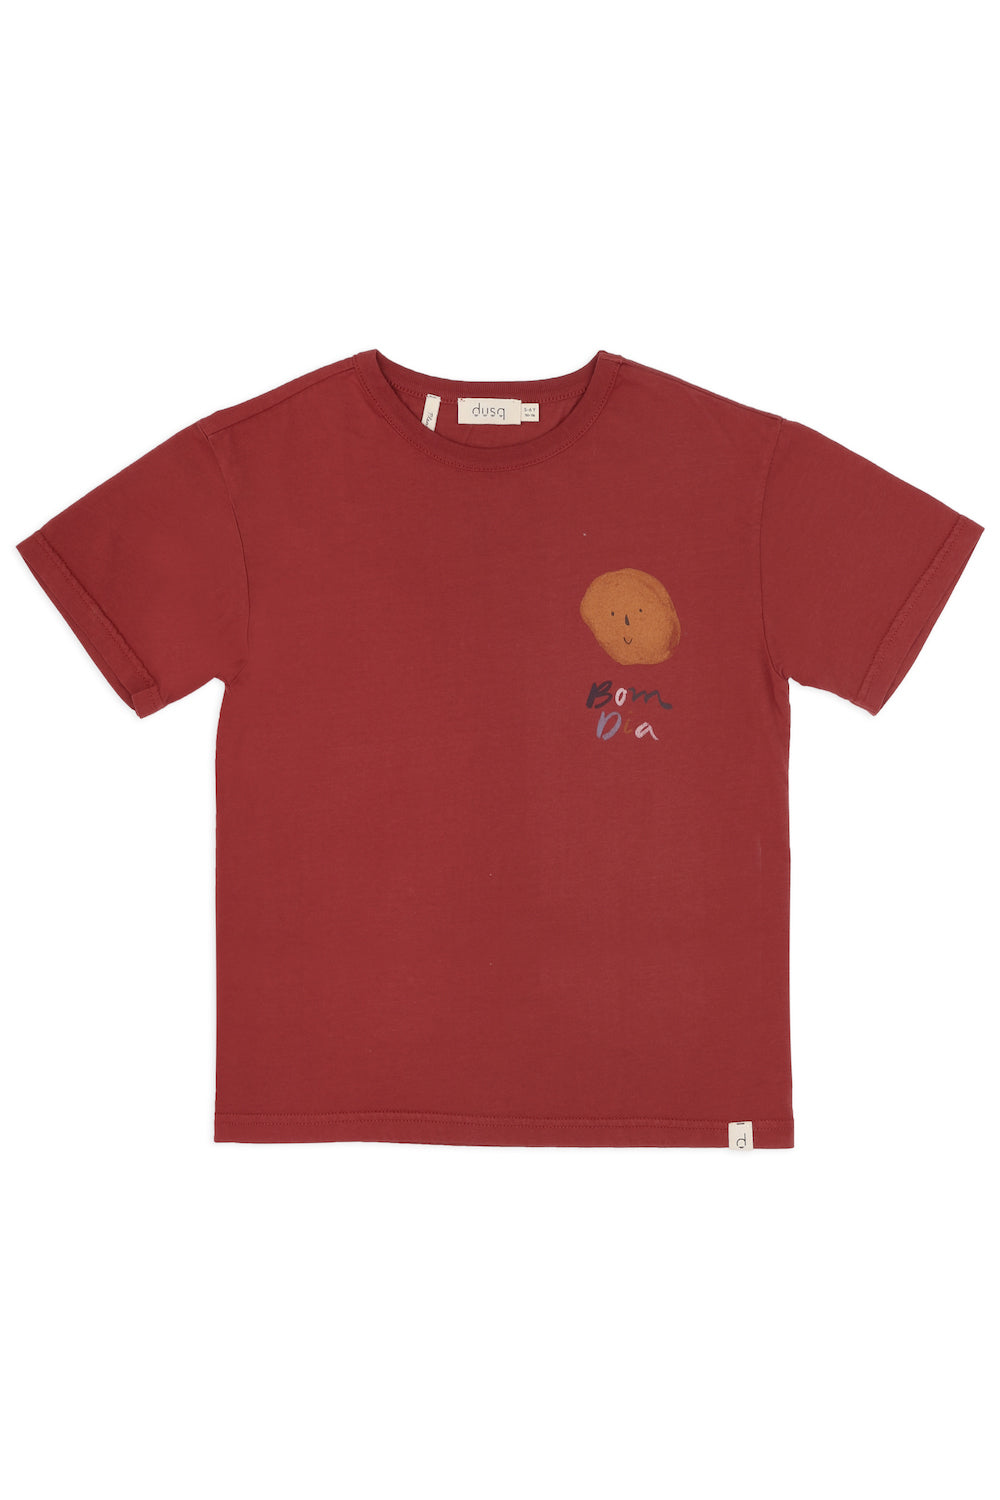 Dusq Cotton Jersey Tee - Clay Red